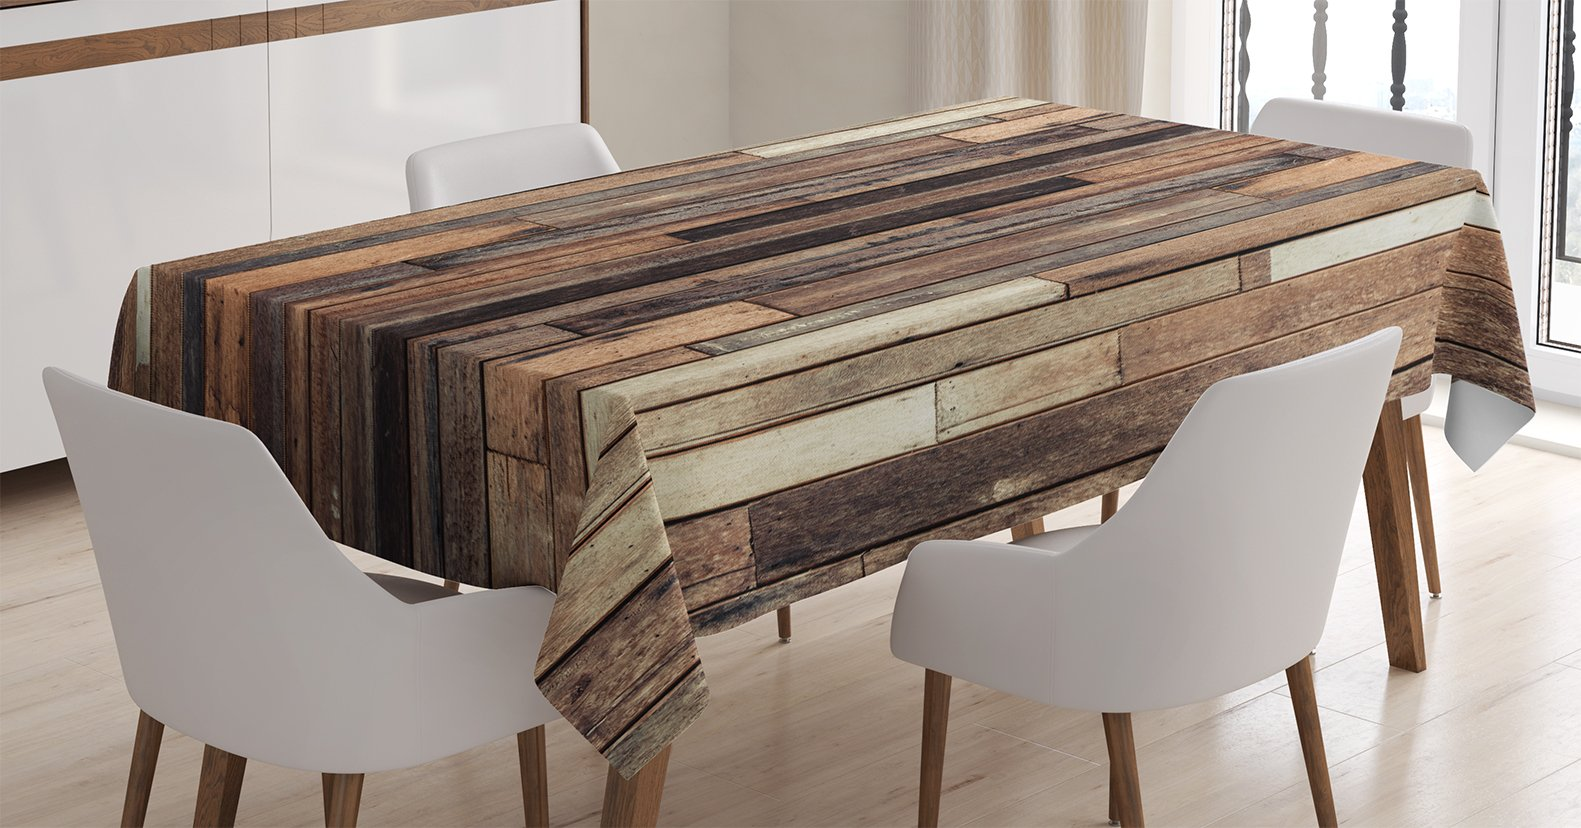 Ambesonne Wooden Tablecloth, Brown Old Hardwood Floor Plank Grunge Lodge Garage Loft Natural Rural Graphic Artsy Print, Dining Room Kitchen Rectangular Table Cover, 60 X 90 inches